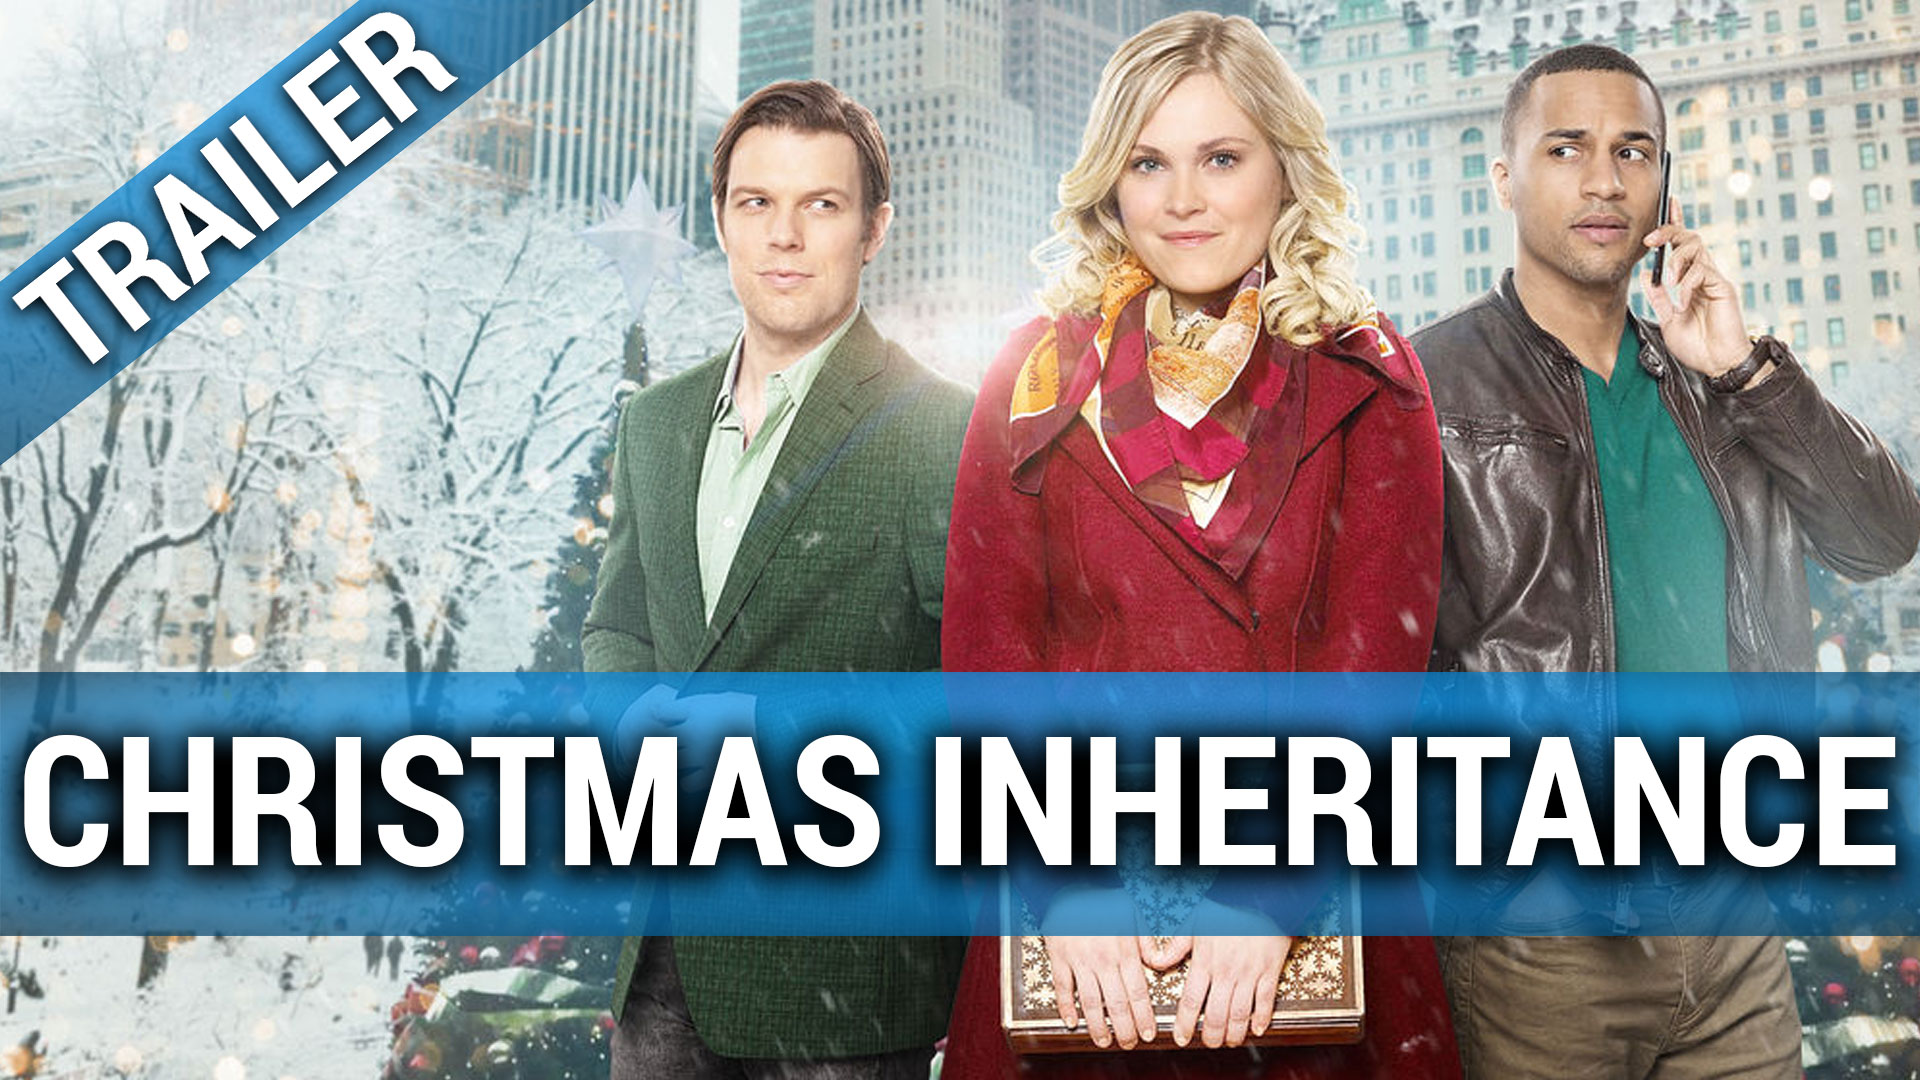 Christmas Inheritance Trailer.Christmas Inheritance Trailer Deutsch